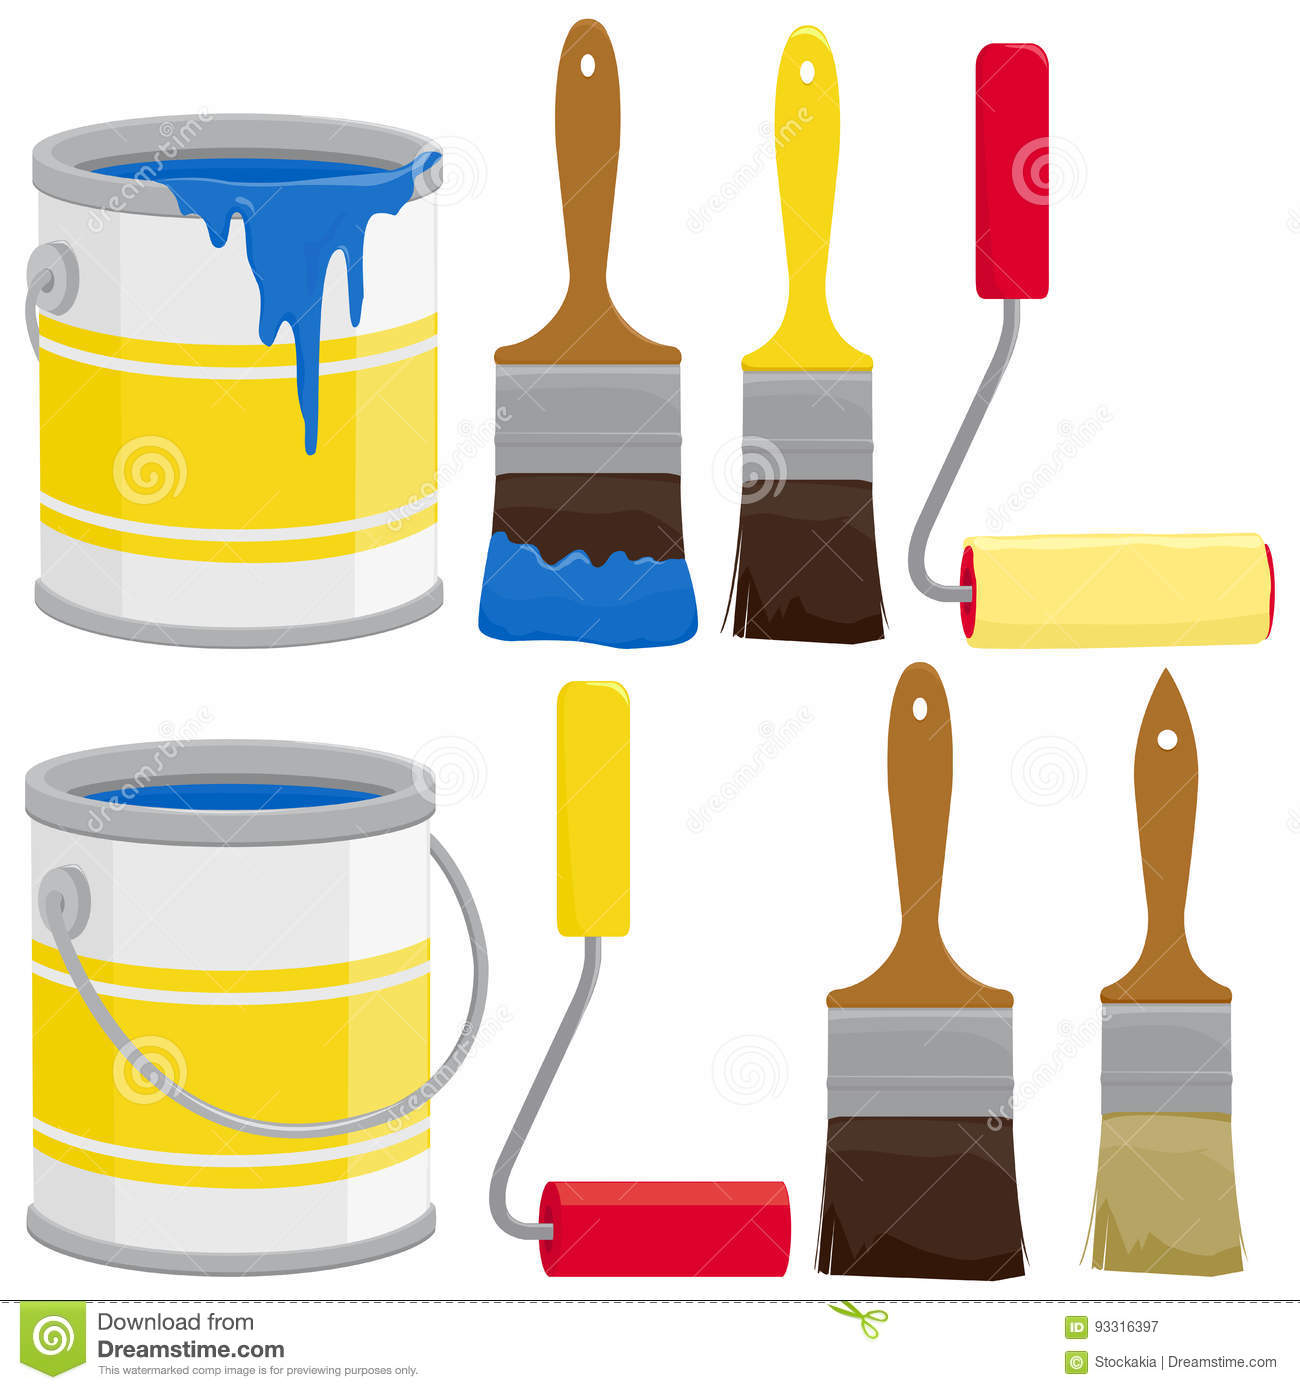 Paint Cans, Brushes And Rollers Stock Vector - Illustration